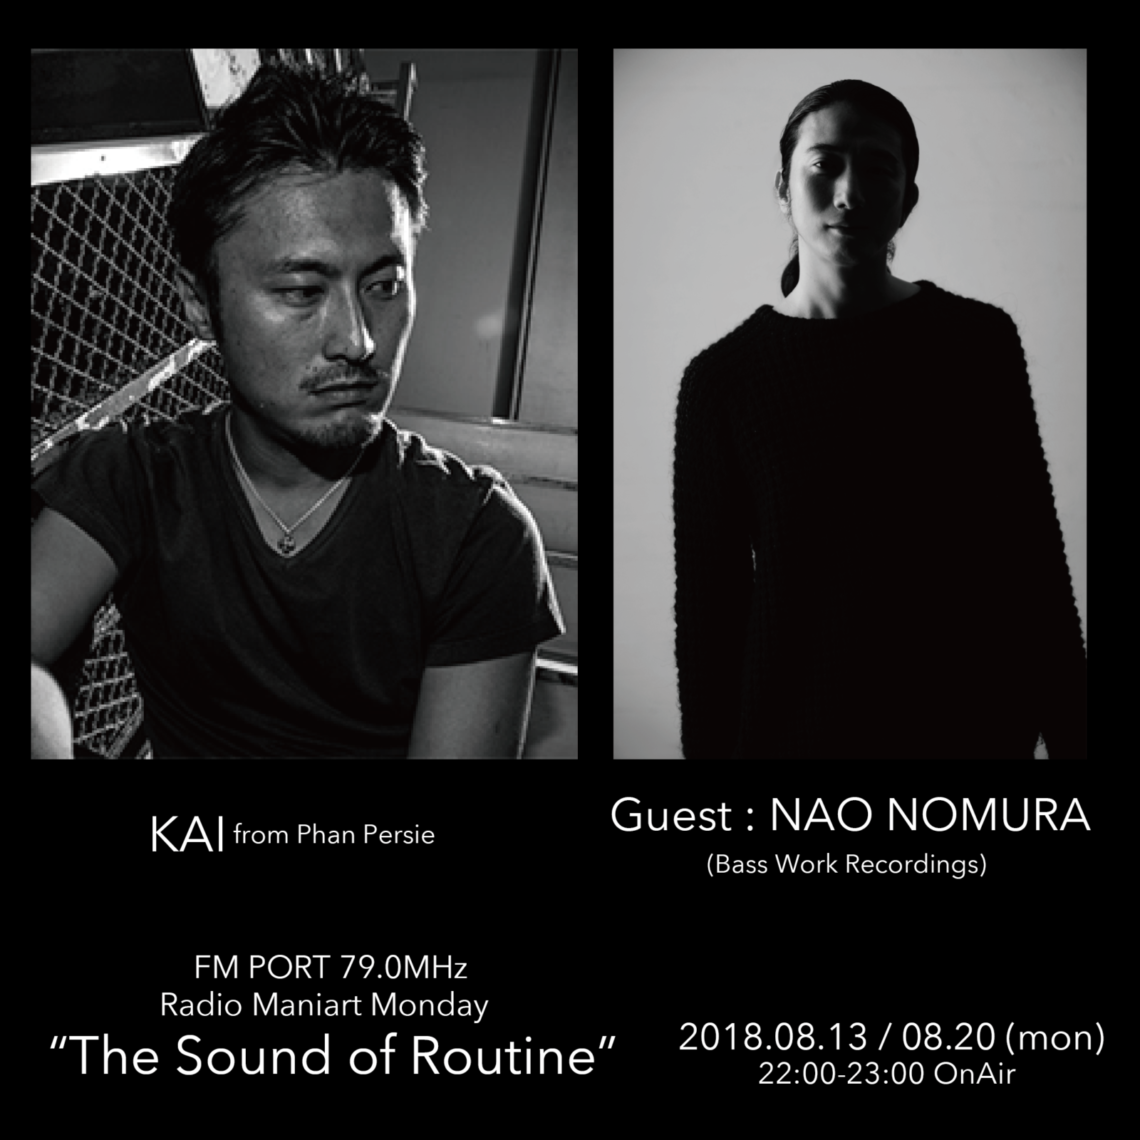 2018.8.13 MON, 8.20 MON – KAI : Navigator on FM PORT / the Sound of Routine – Guest: NAO NOMURA